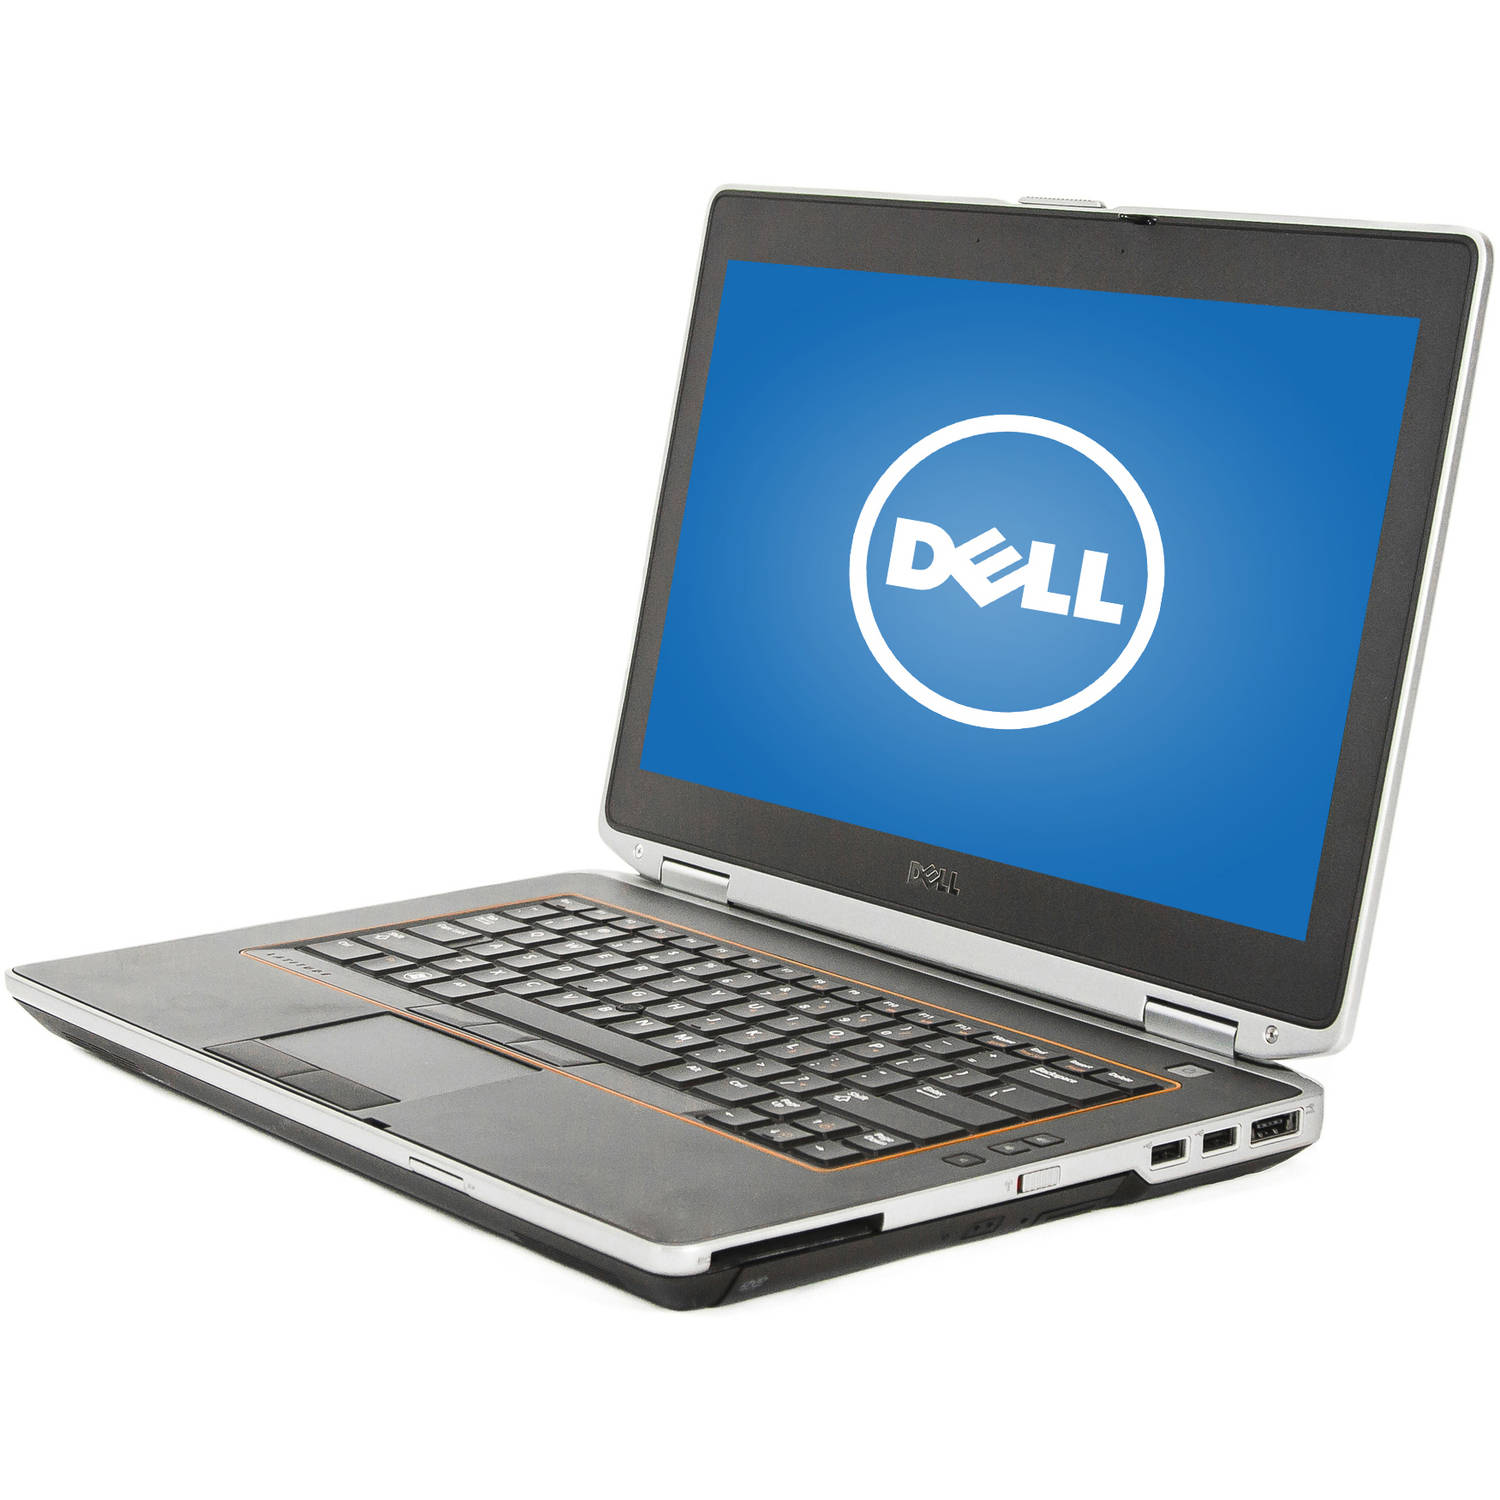 Dell E6420 Core i5 2.5GHz 4096MB 320GB 14-inch DVD-RW Hdm...